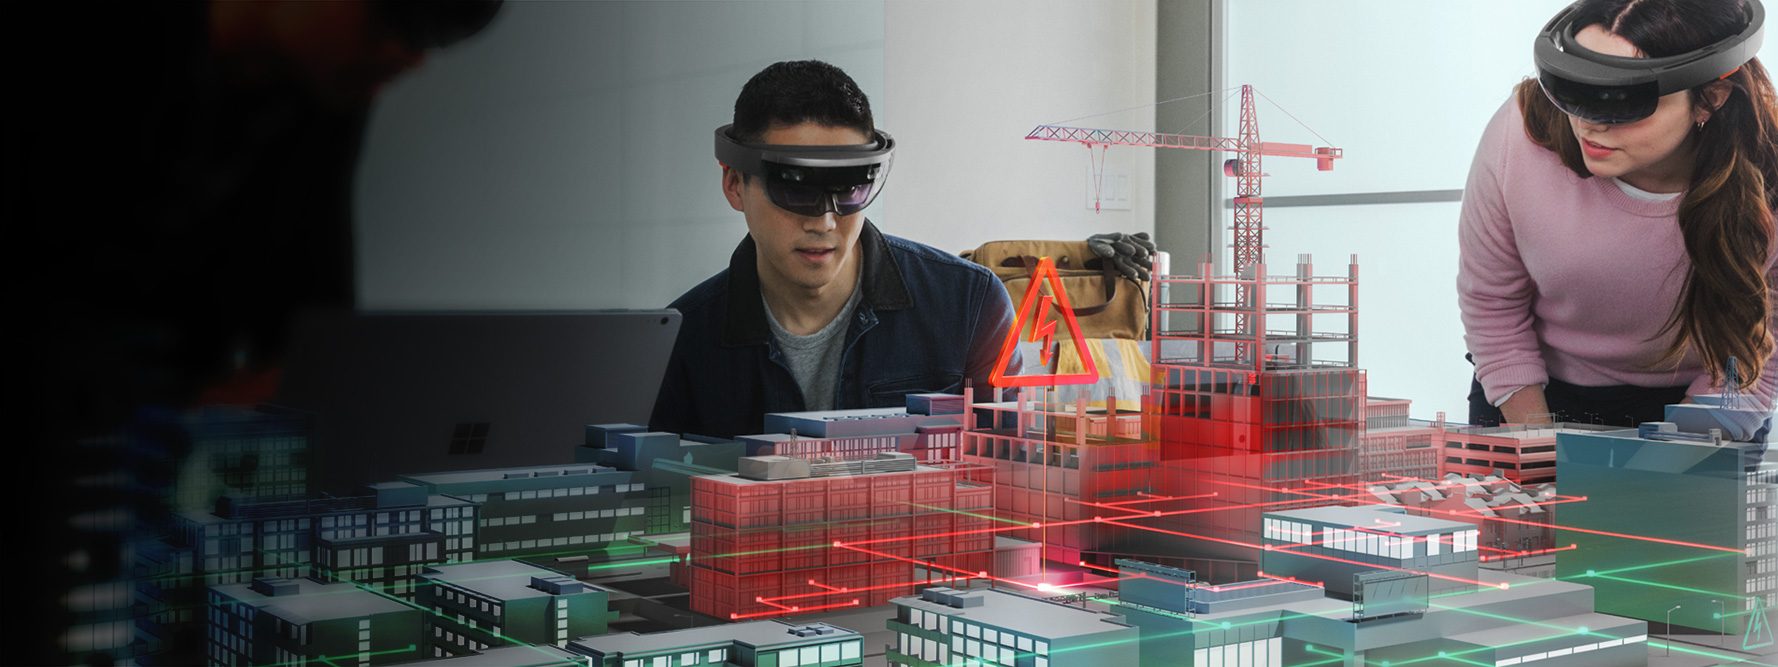 Man and women with HoloLens looking at virtual construction model